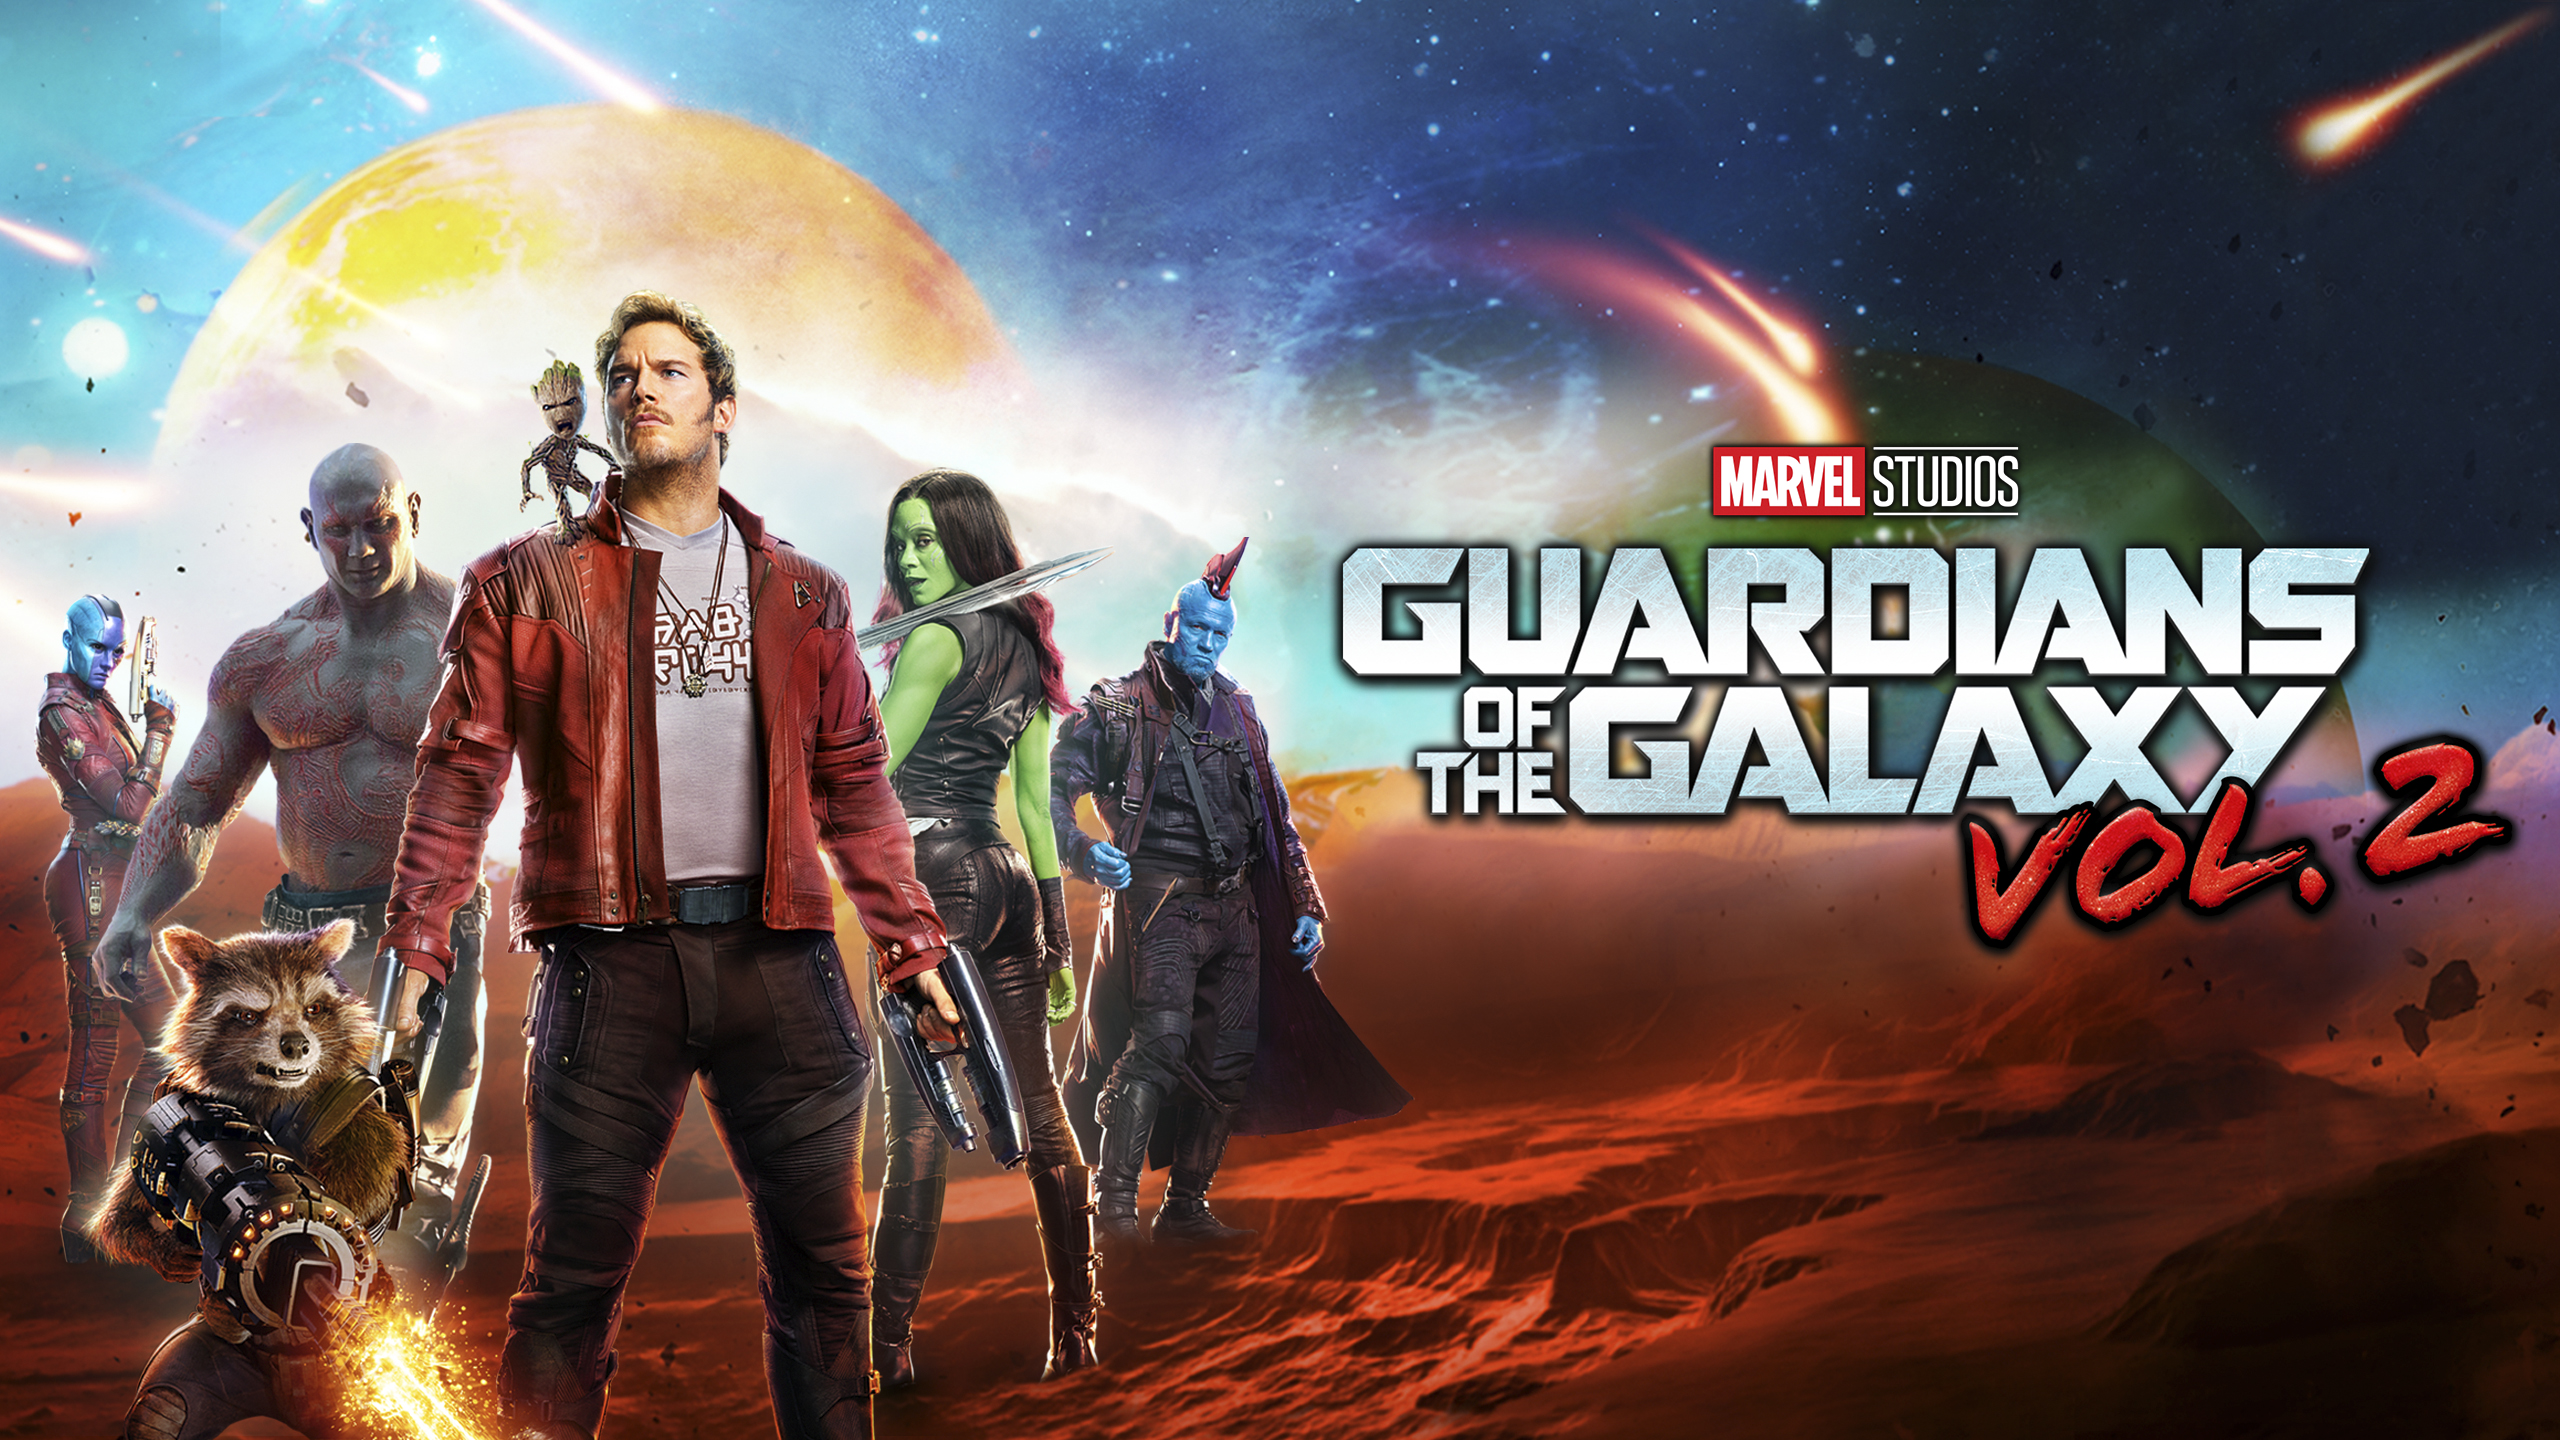 Marvel Studios Guardians Of The Galaxy Vol 2 Hd Wallpaper